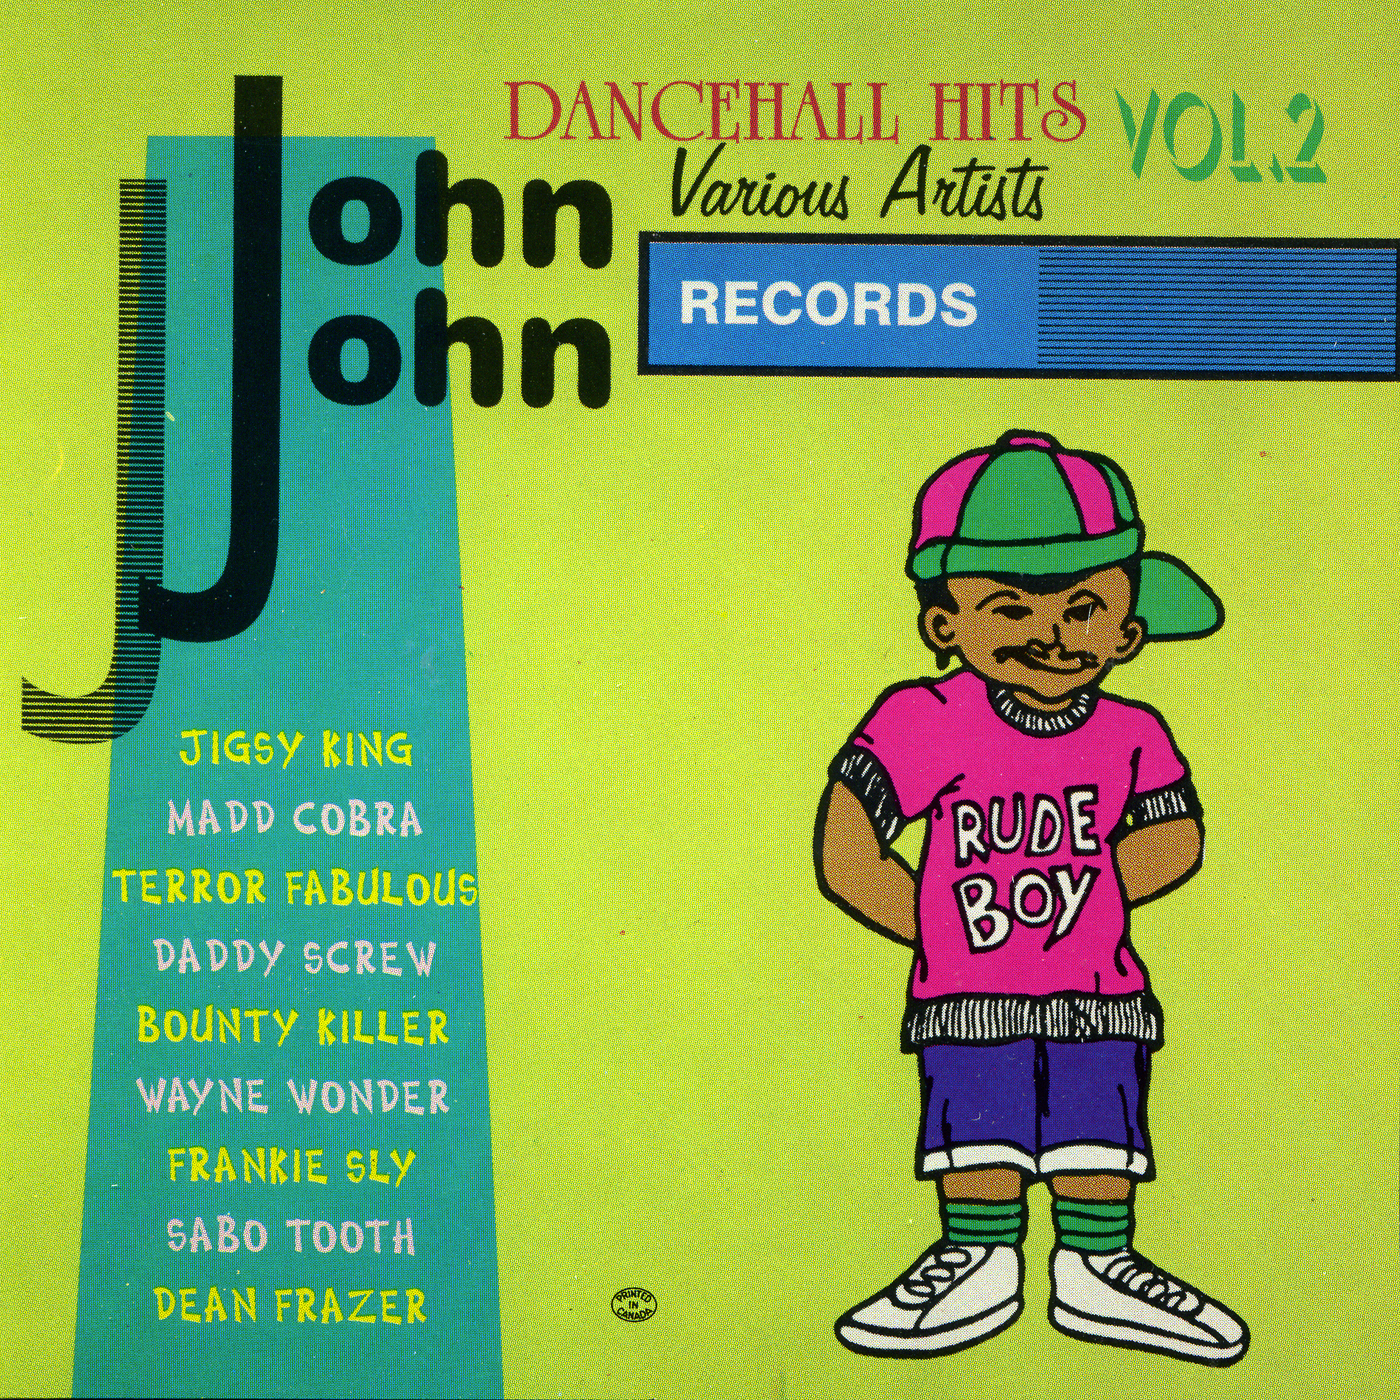 John John Dancehall Hits Vol. 2